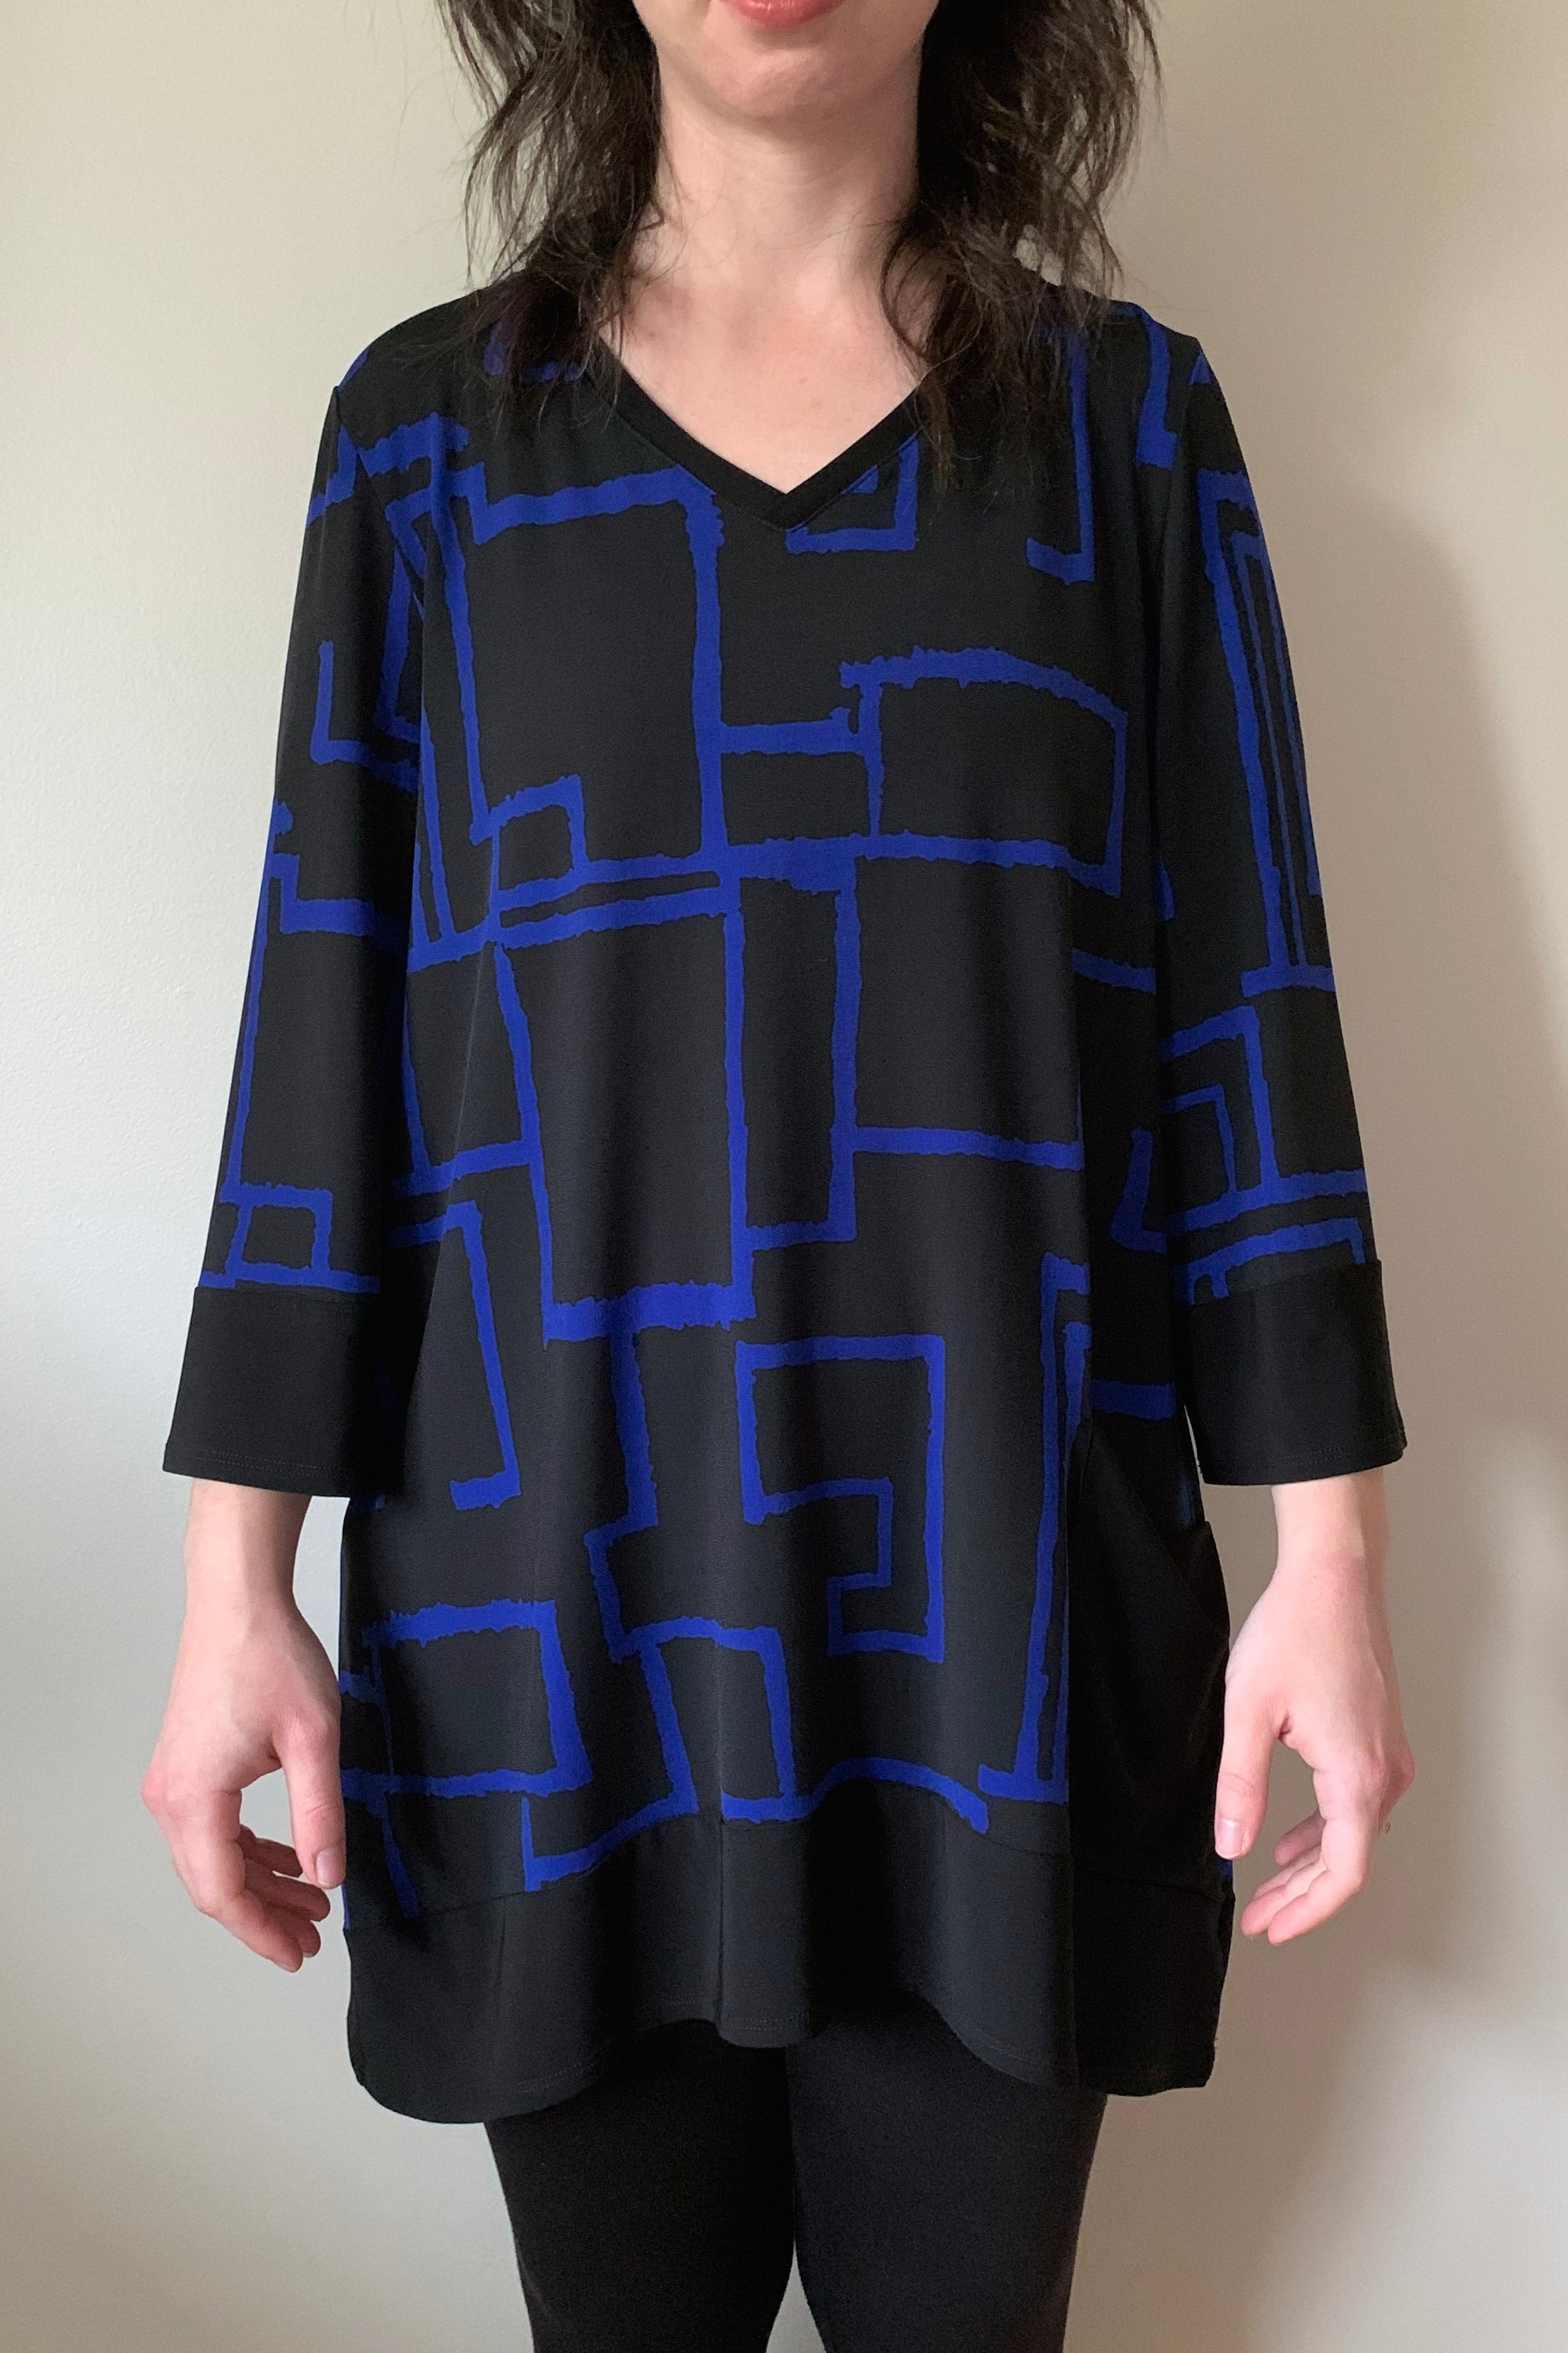 COMPLI K Black and Blue 3/4 Sleeve Knit V-Neck Tunic 31063 FW2020/2021 (front view)